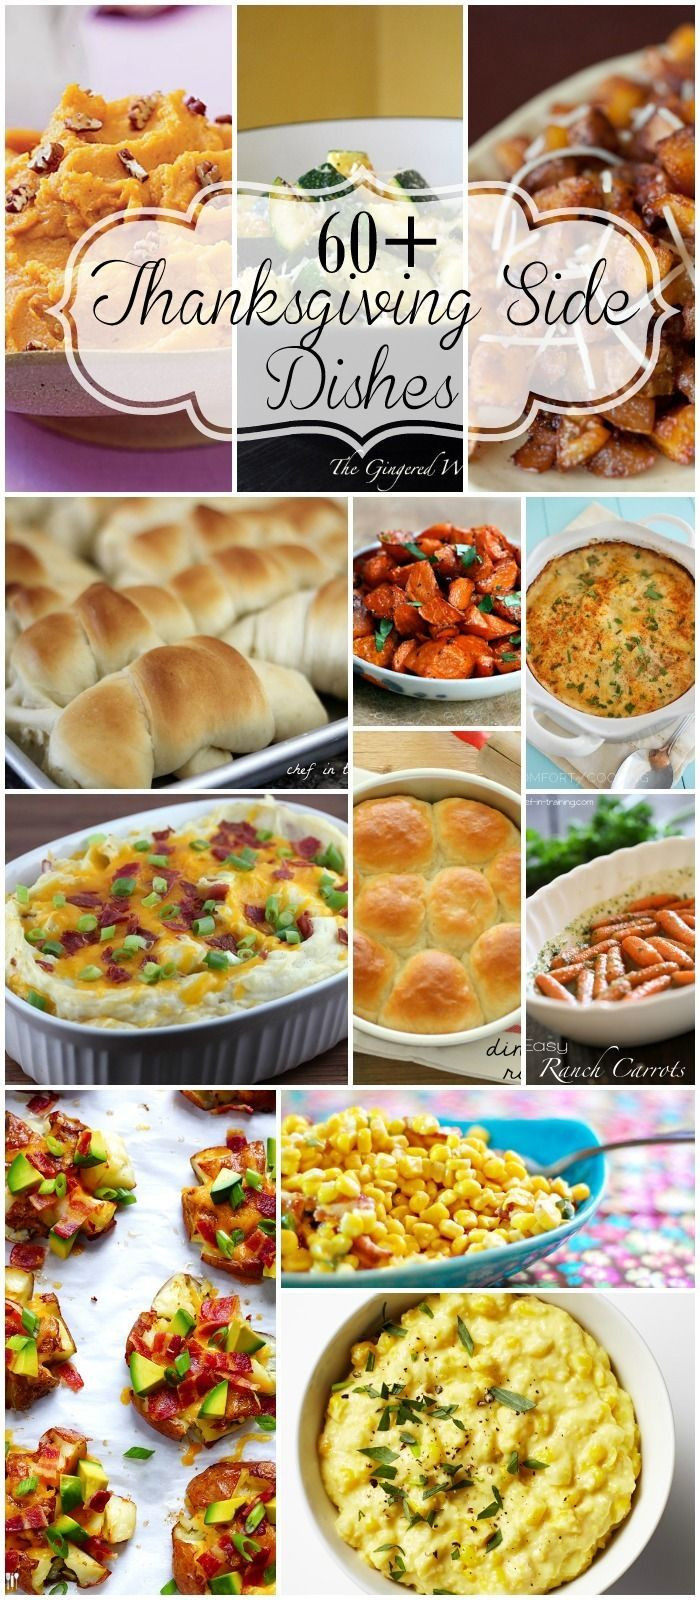 Thanksgiving Dinner Ideas Pinterest  60 Thanksgiving Sides veggies potatoes and rolls